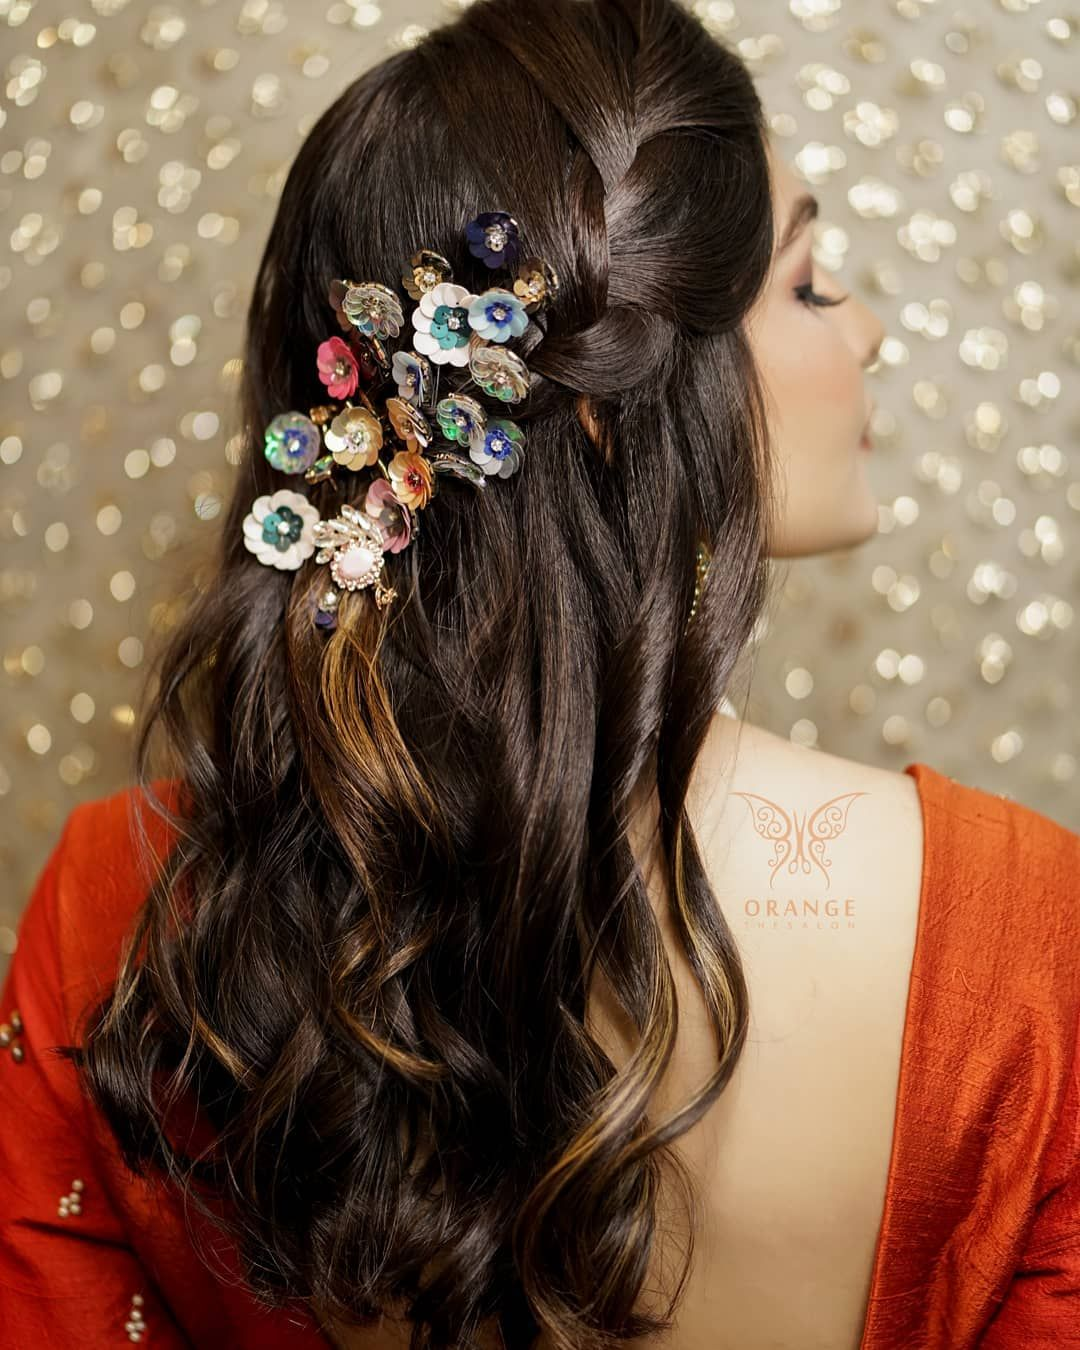 20 unique and trending bridal hair accessories for the